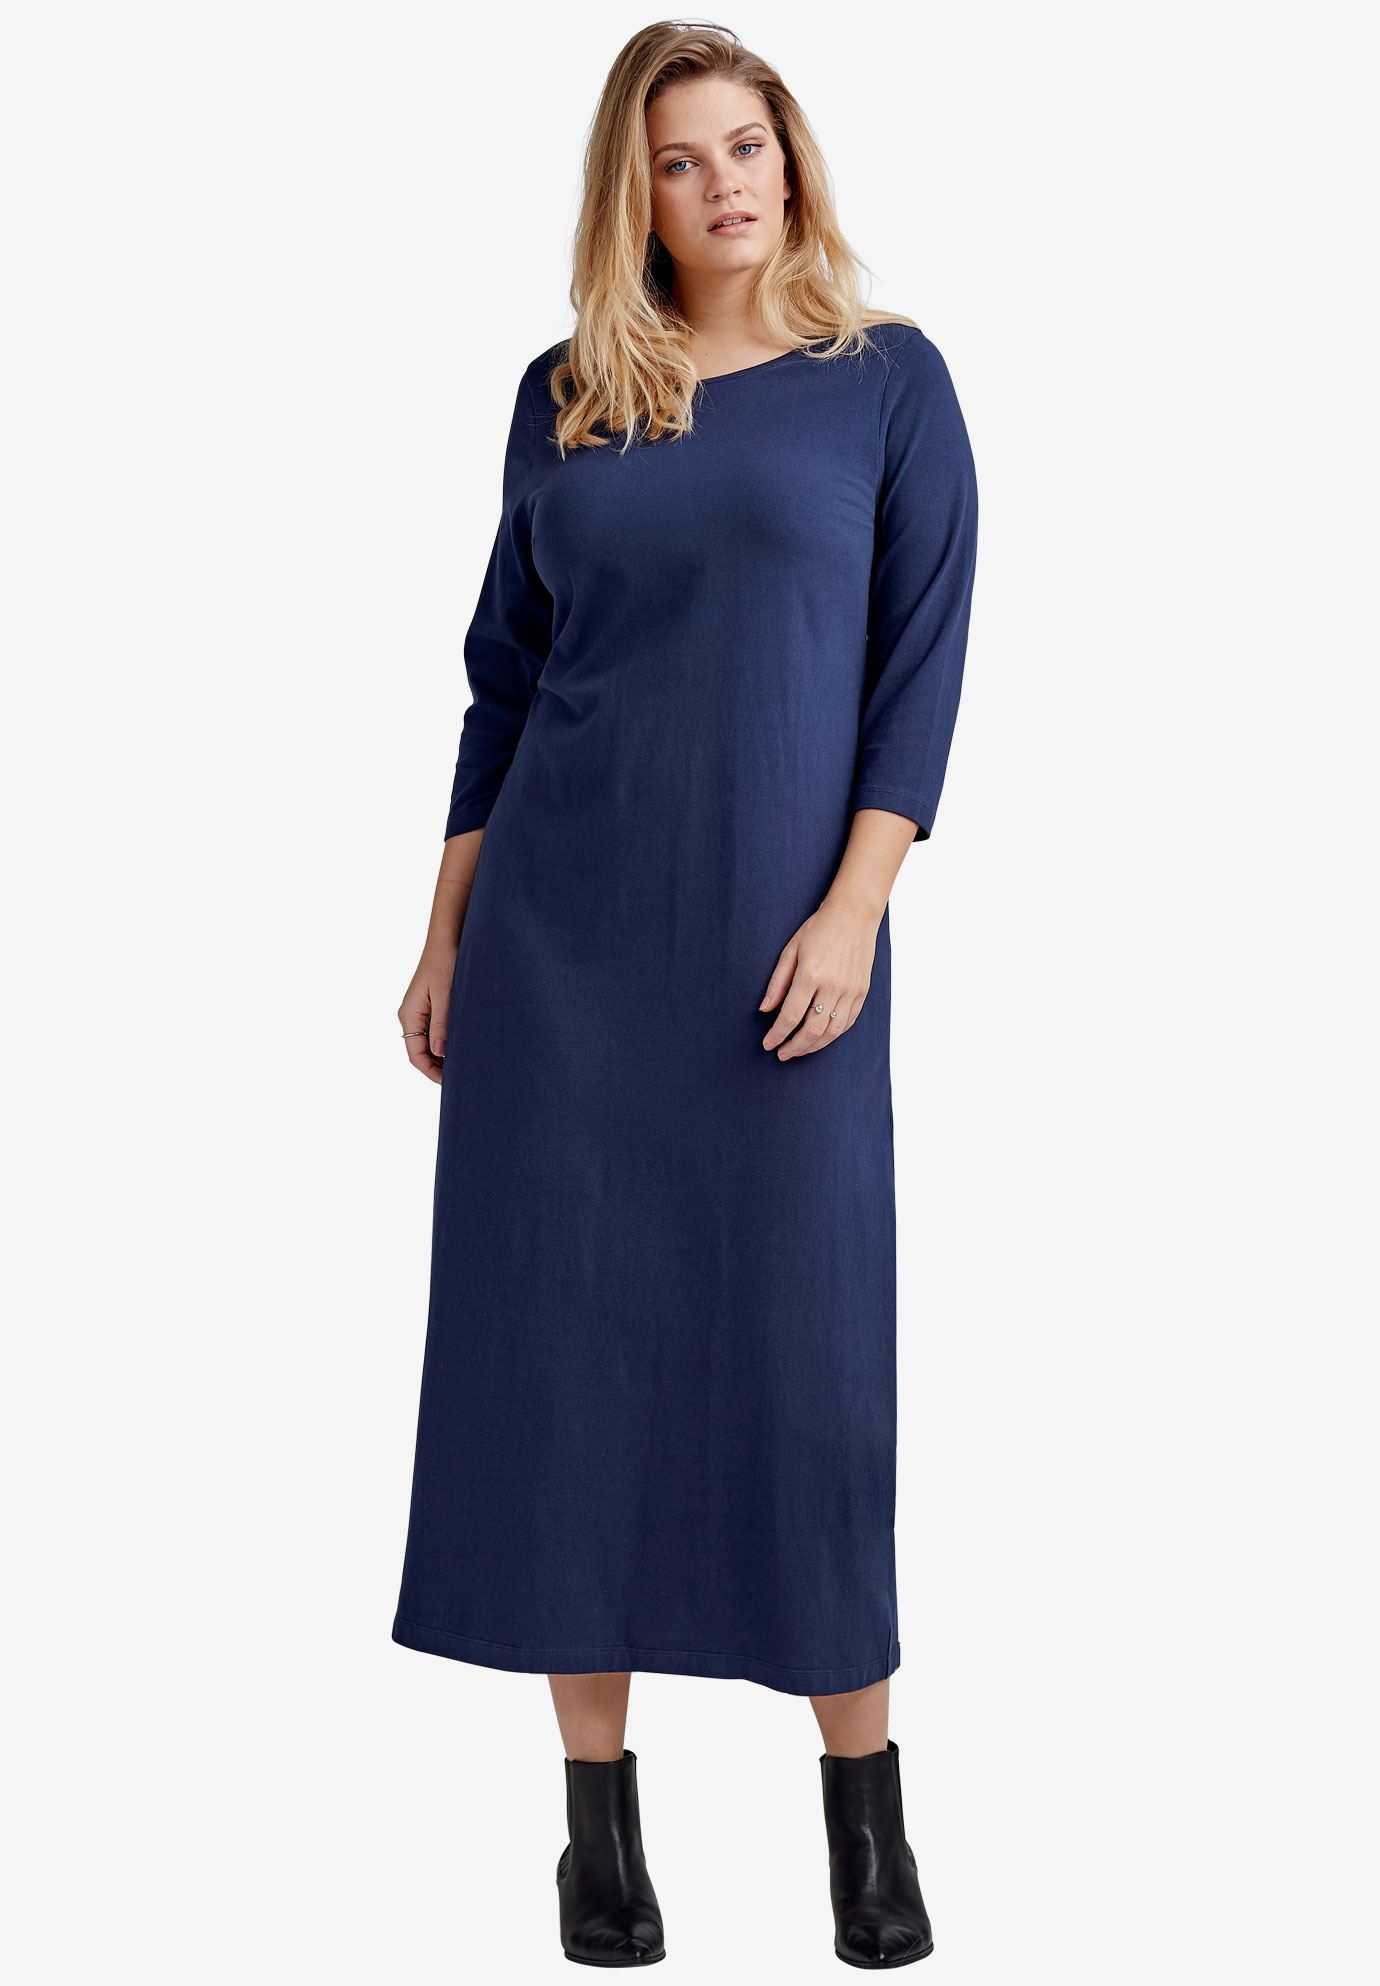 3 4 Sleeve Knit Maxi Dress By Ellos Plus Size All Dresses Ellos